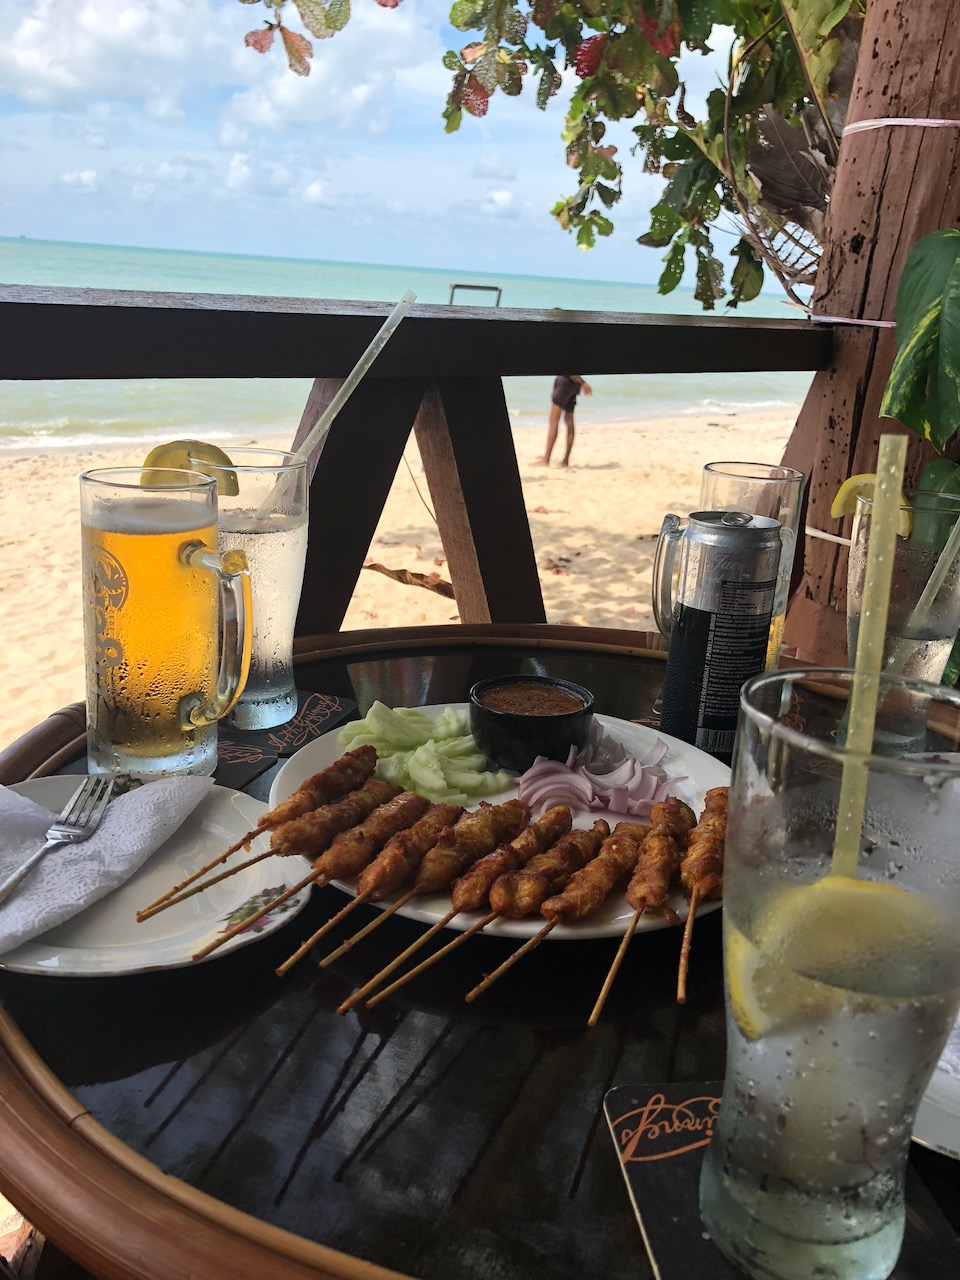 The juicest chicken satay beachside at Batu Ferrenghi!